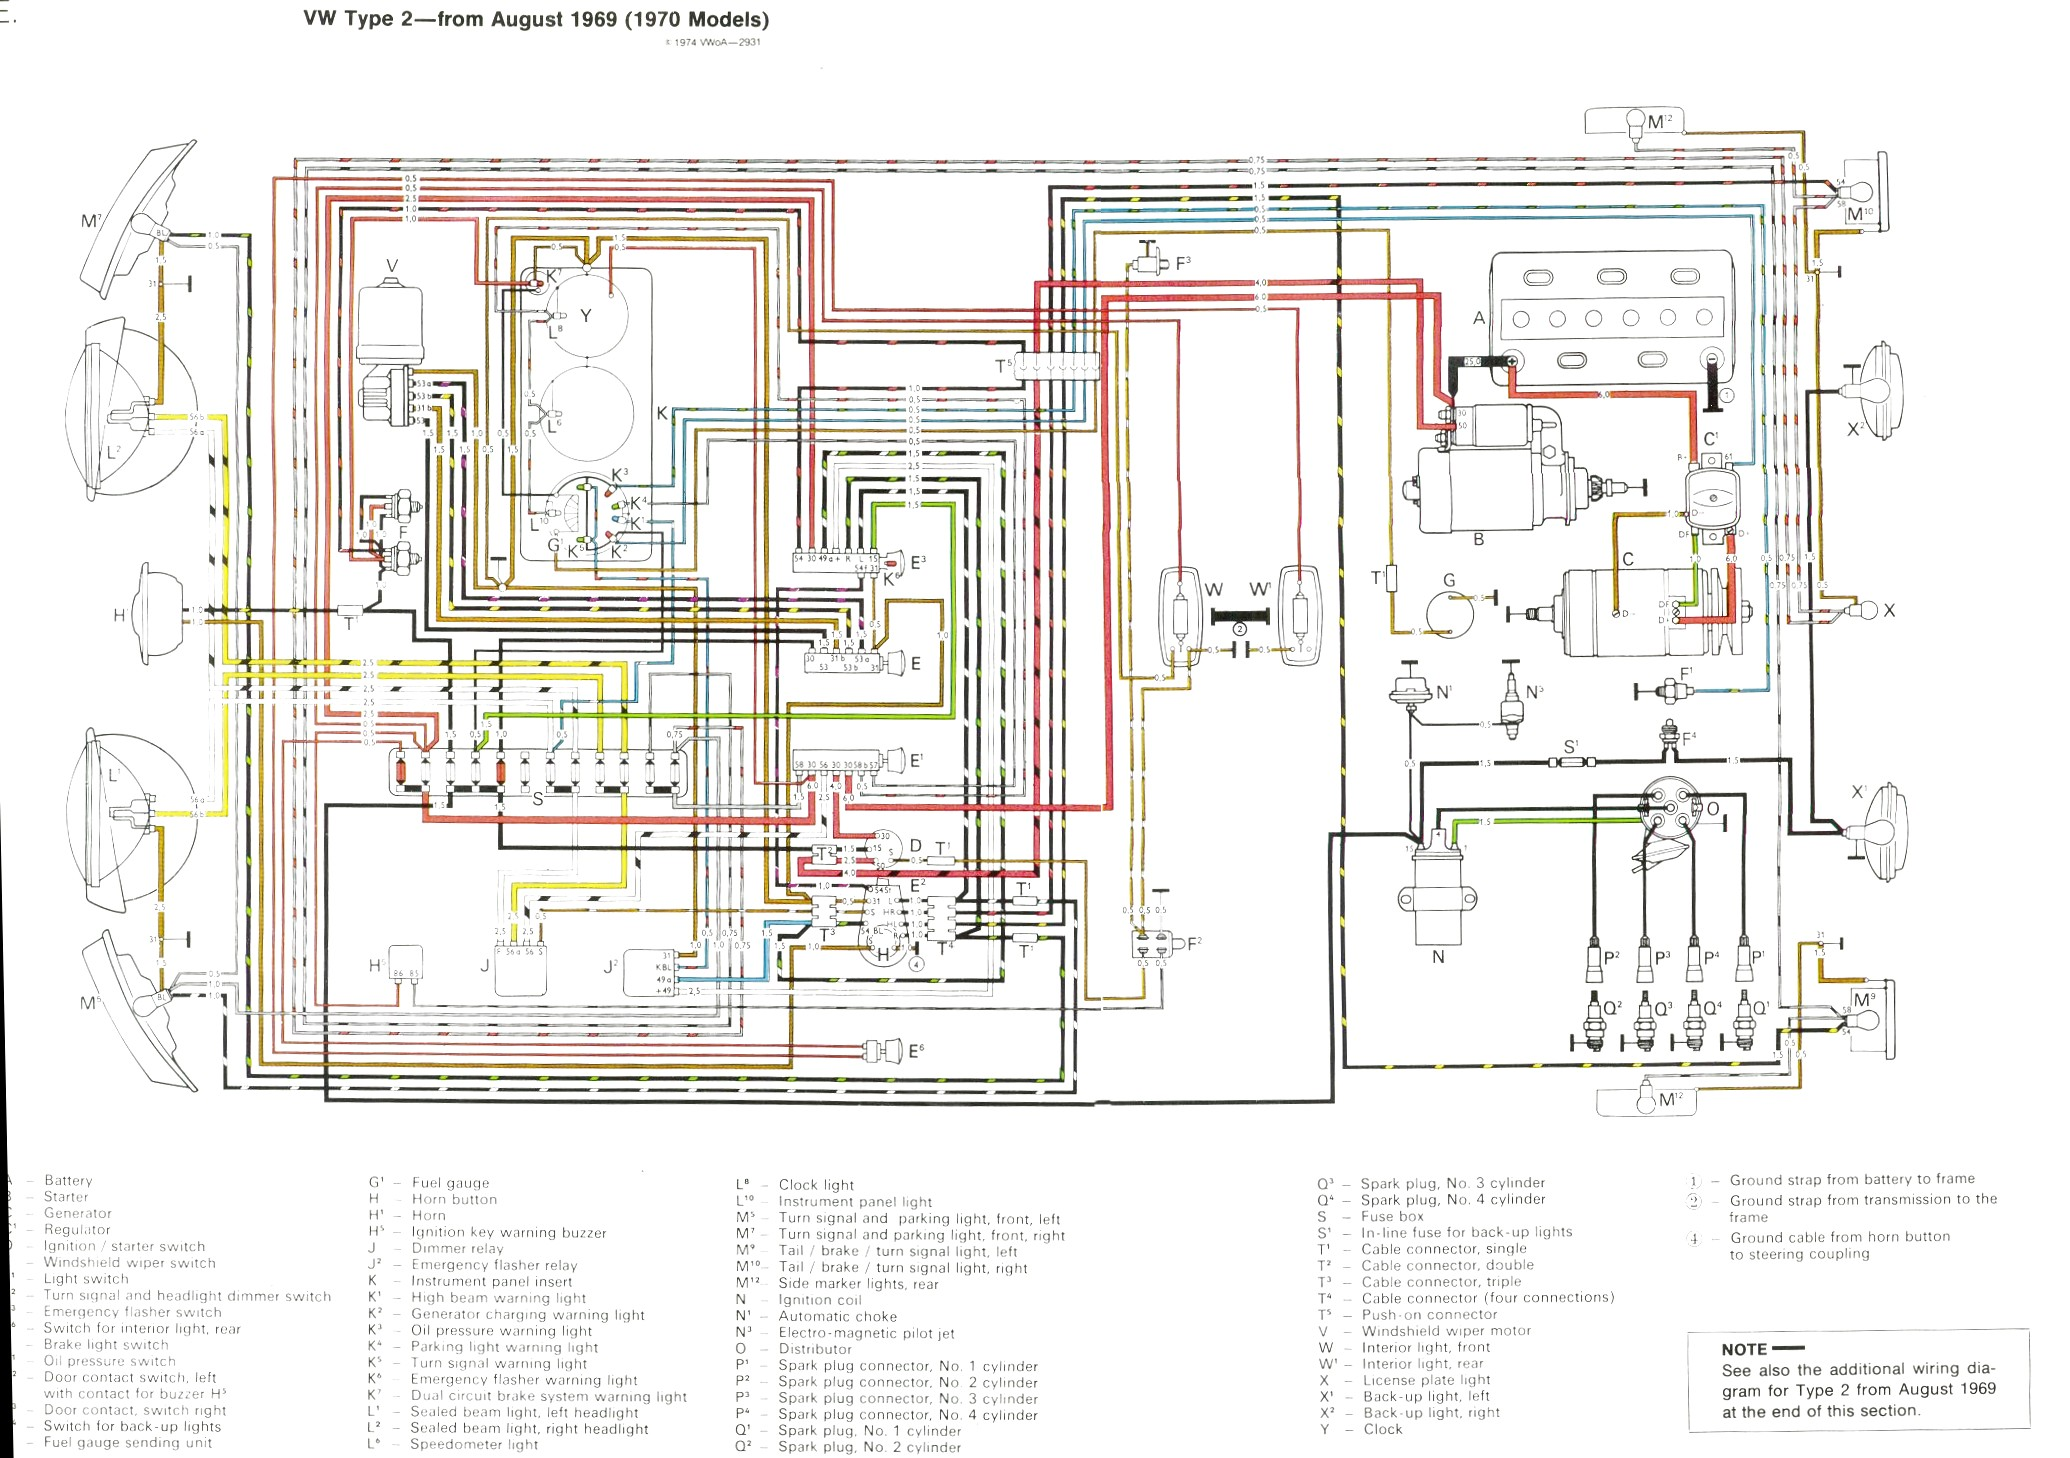 72 Vw Beetle Wiring Diagram 69 Generator